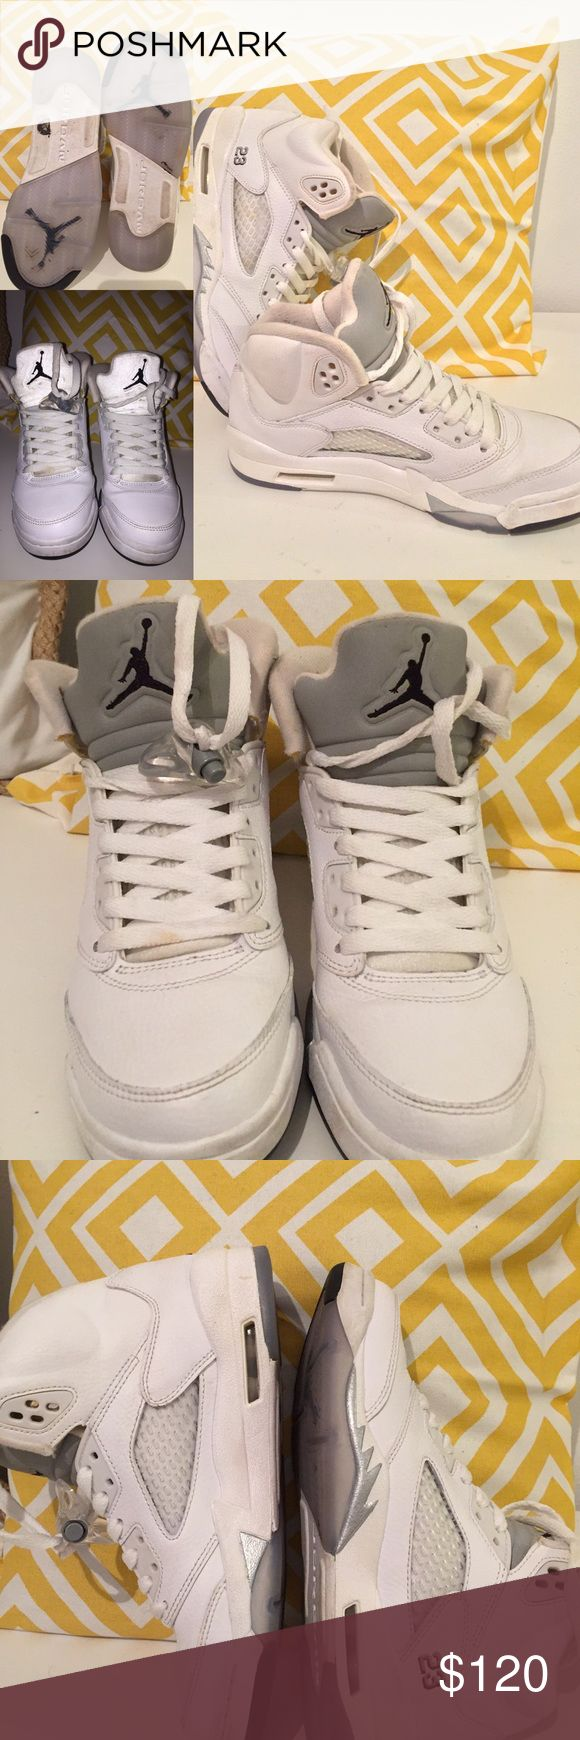 Air Jordan 5 Metallic Air Jordan 5 Metallic size 5.5 youth= 7 women    9/10 shoes are in very good condition Jordan Shoes Athletic Shoes